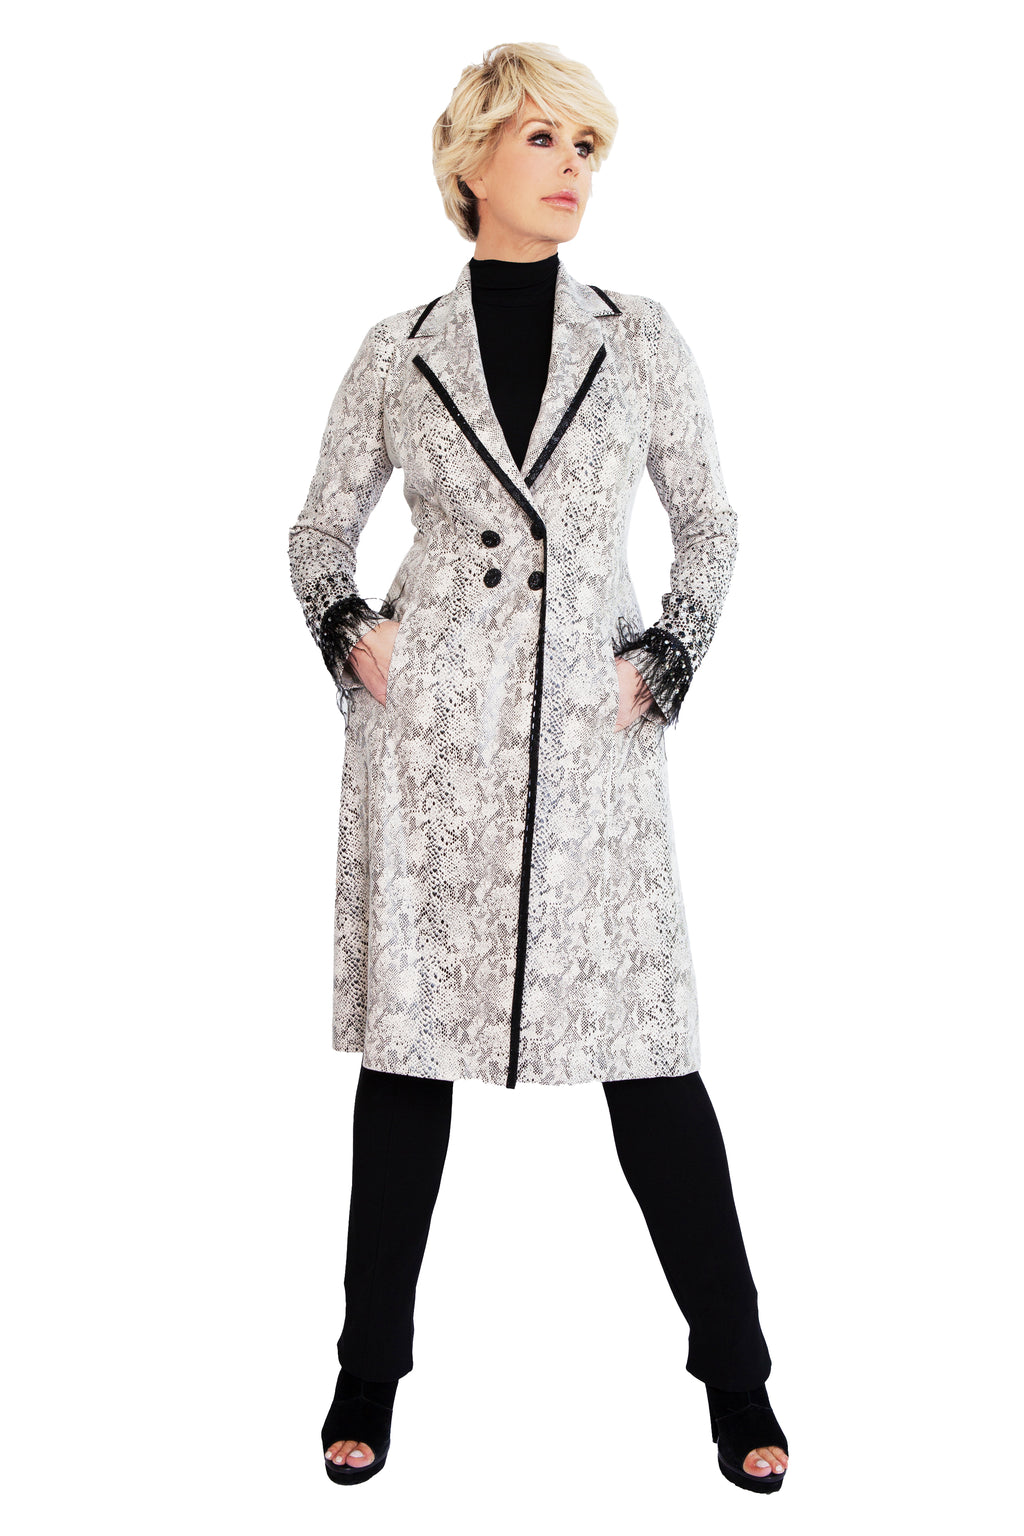 Jeweled Snake Feather Duster Coat - W9500901